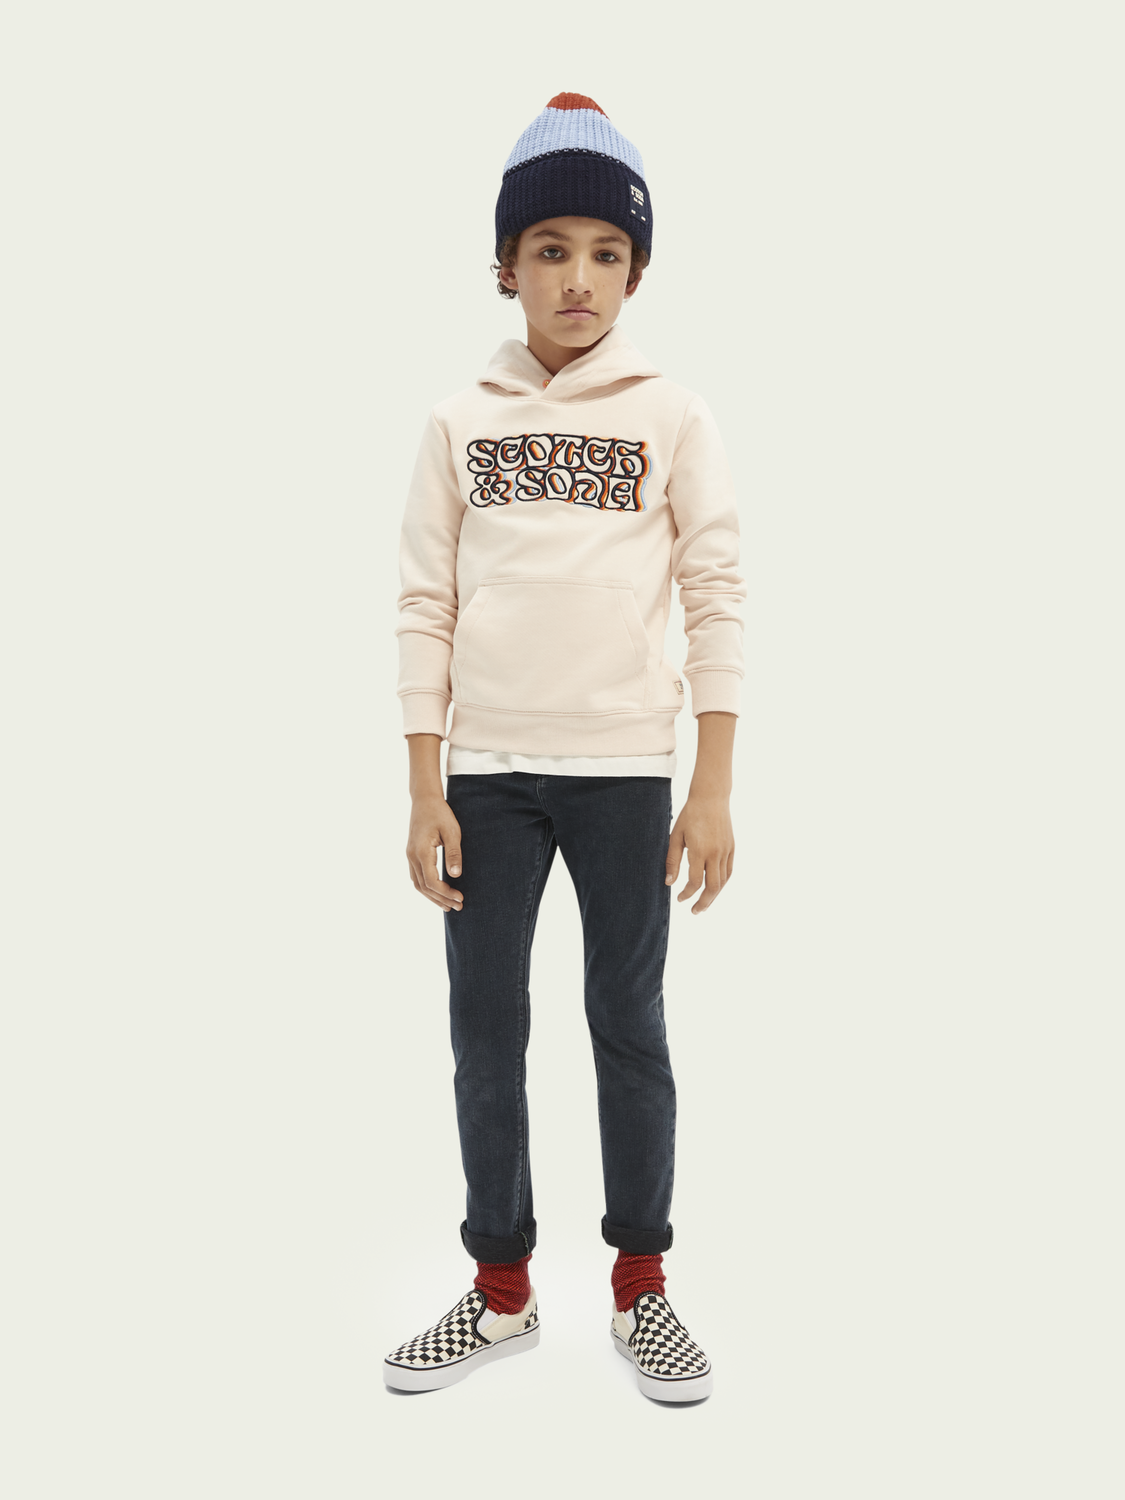 Kinder Tigger Jeans aus recycelter Baumwolle − Ghost Ship